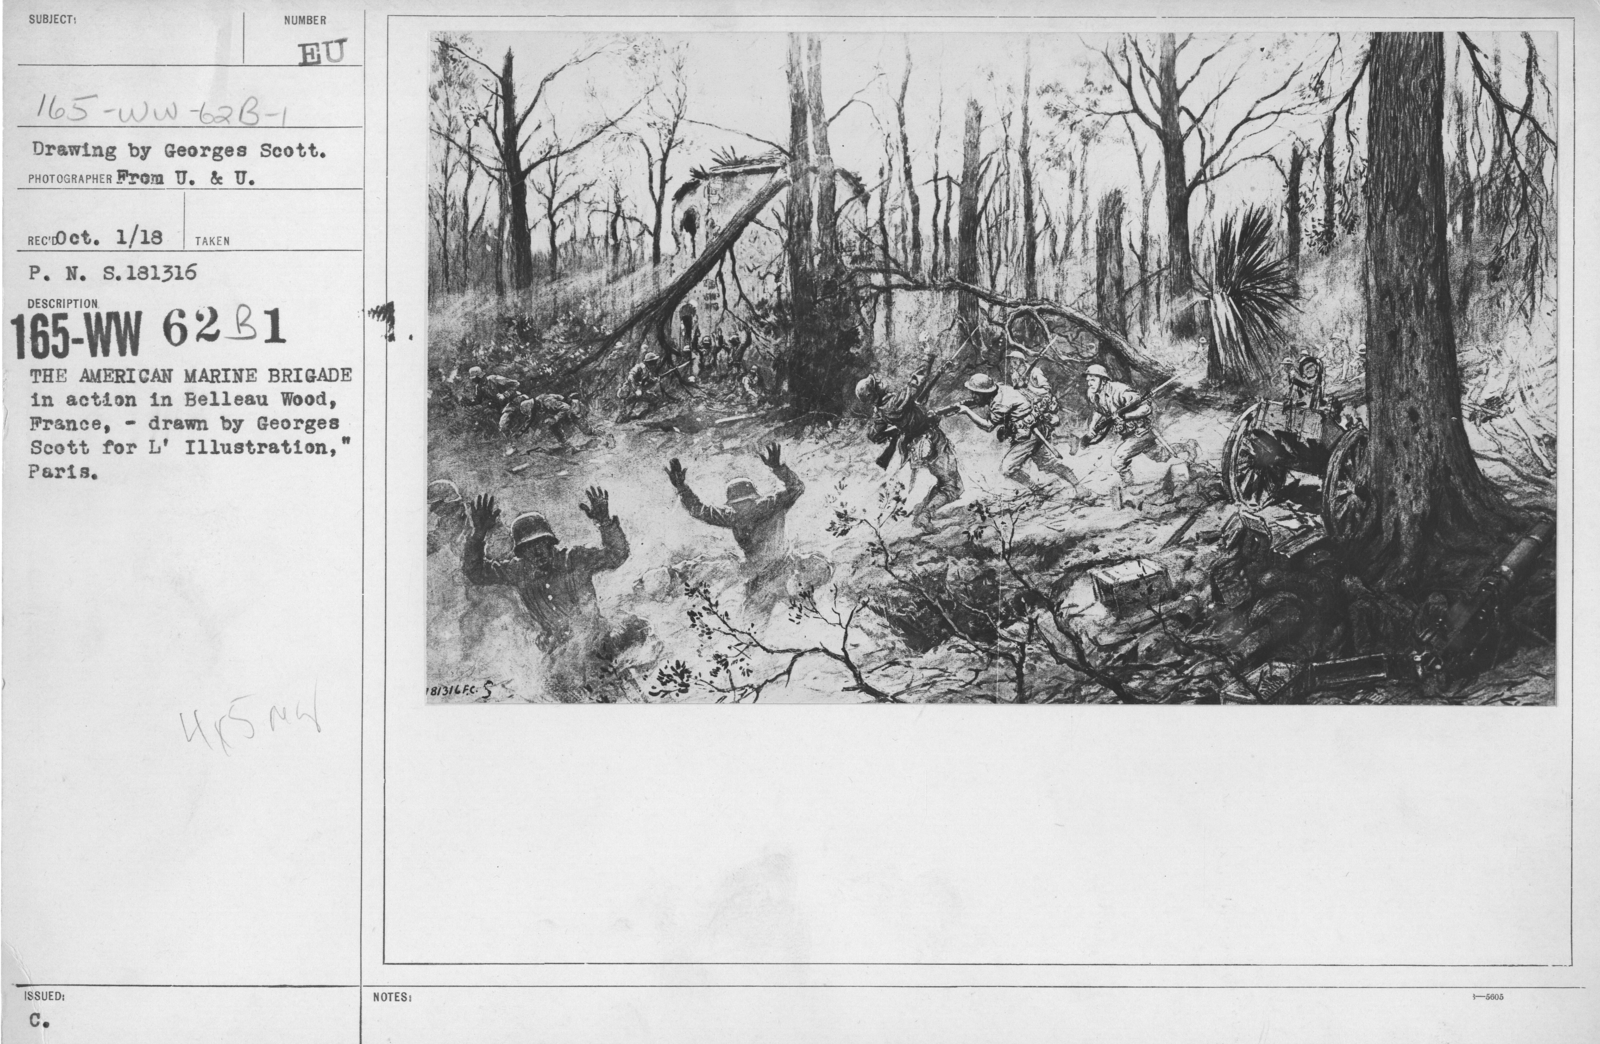 """Artists - French Artworks - The American Marine Brigade in action in Belleau Wood, France, - drawn by Georges Scott for L'Illustration,"""" Paris"""